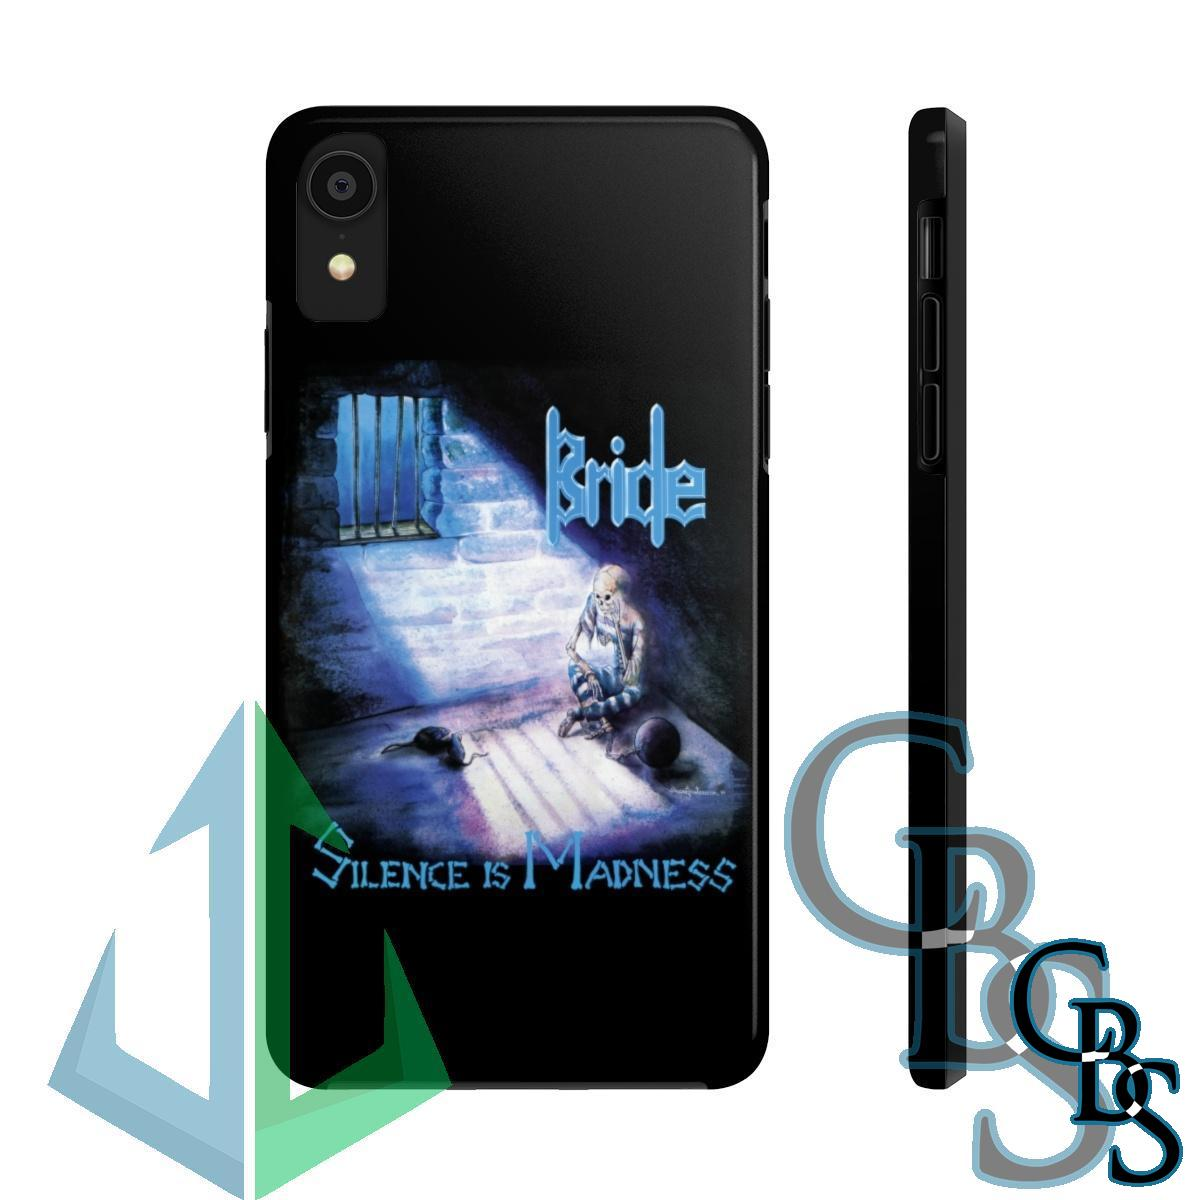 Bride – Silence is Madness iPhone Cases (iPhone 7/7 Plus, iPhone 8/8 Plus, iPhone X, XS, XR, iPhone 11, 11 Pro, 11 Pro Max)